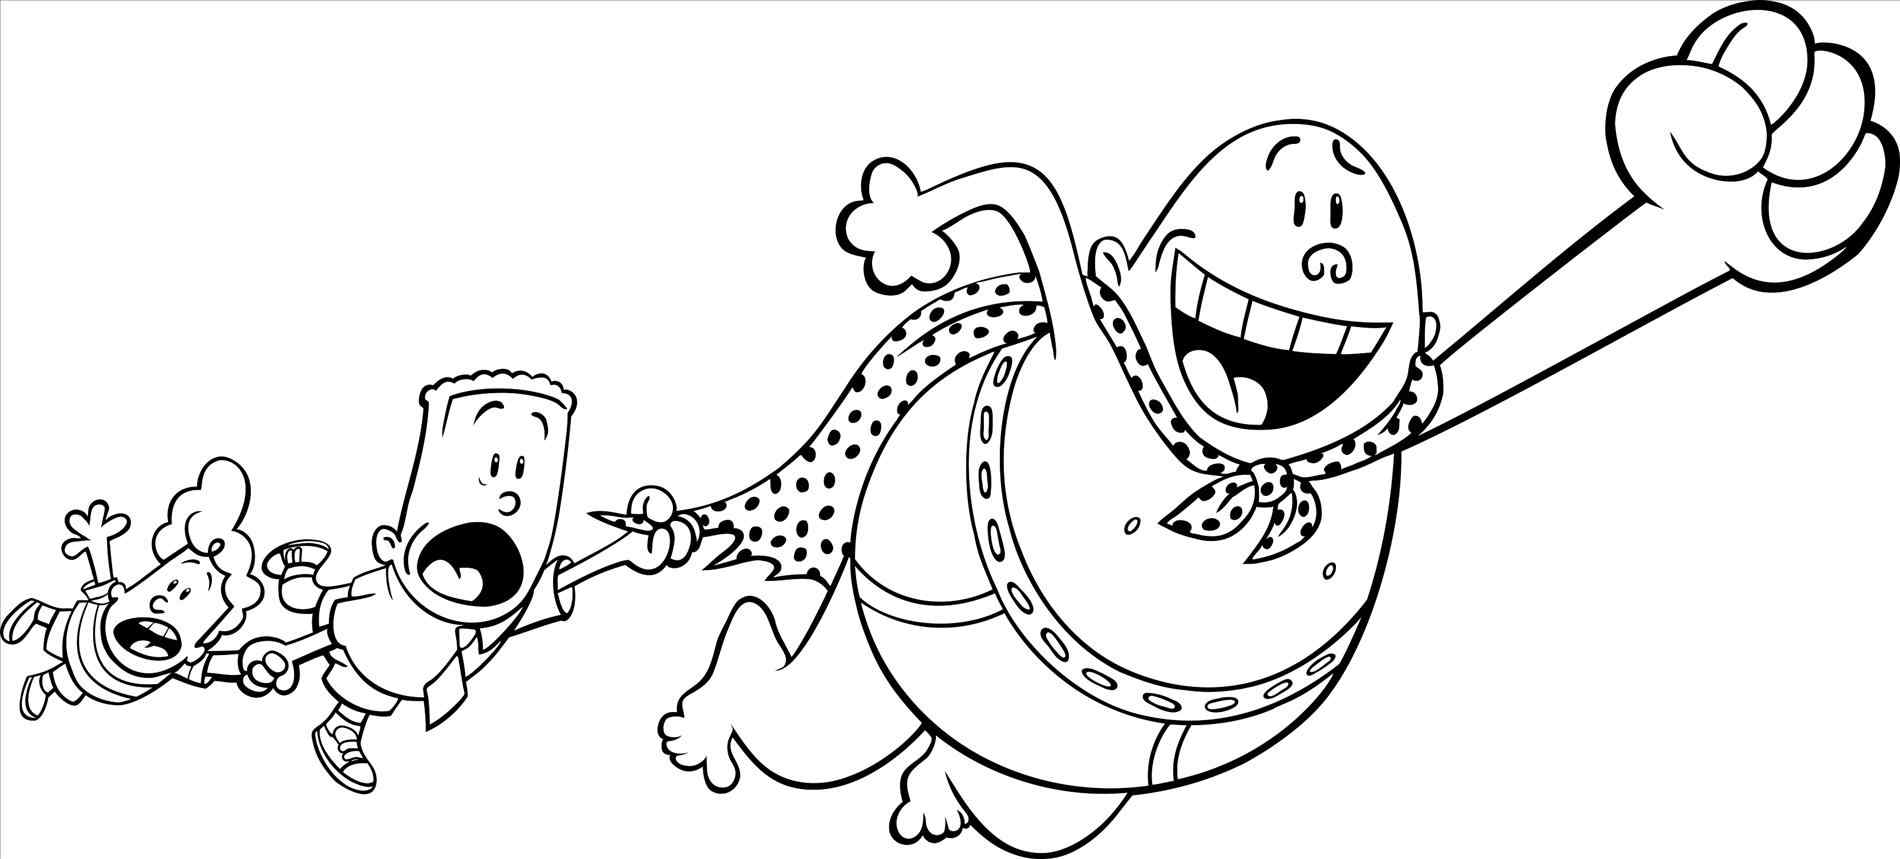 1900x859 Splash Mountain Coloring Pages Online Coloring Printable